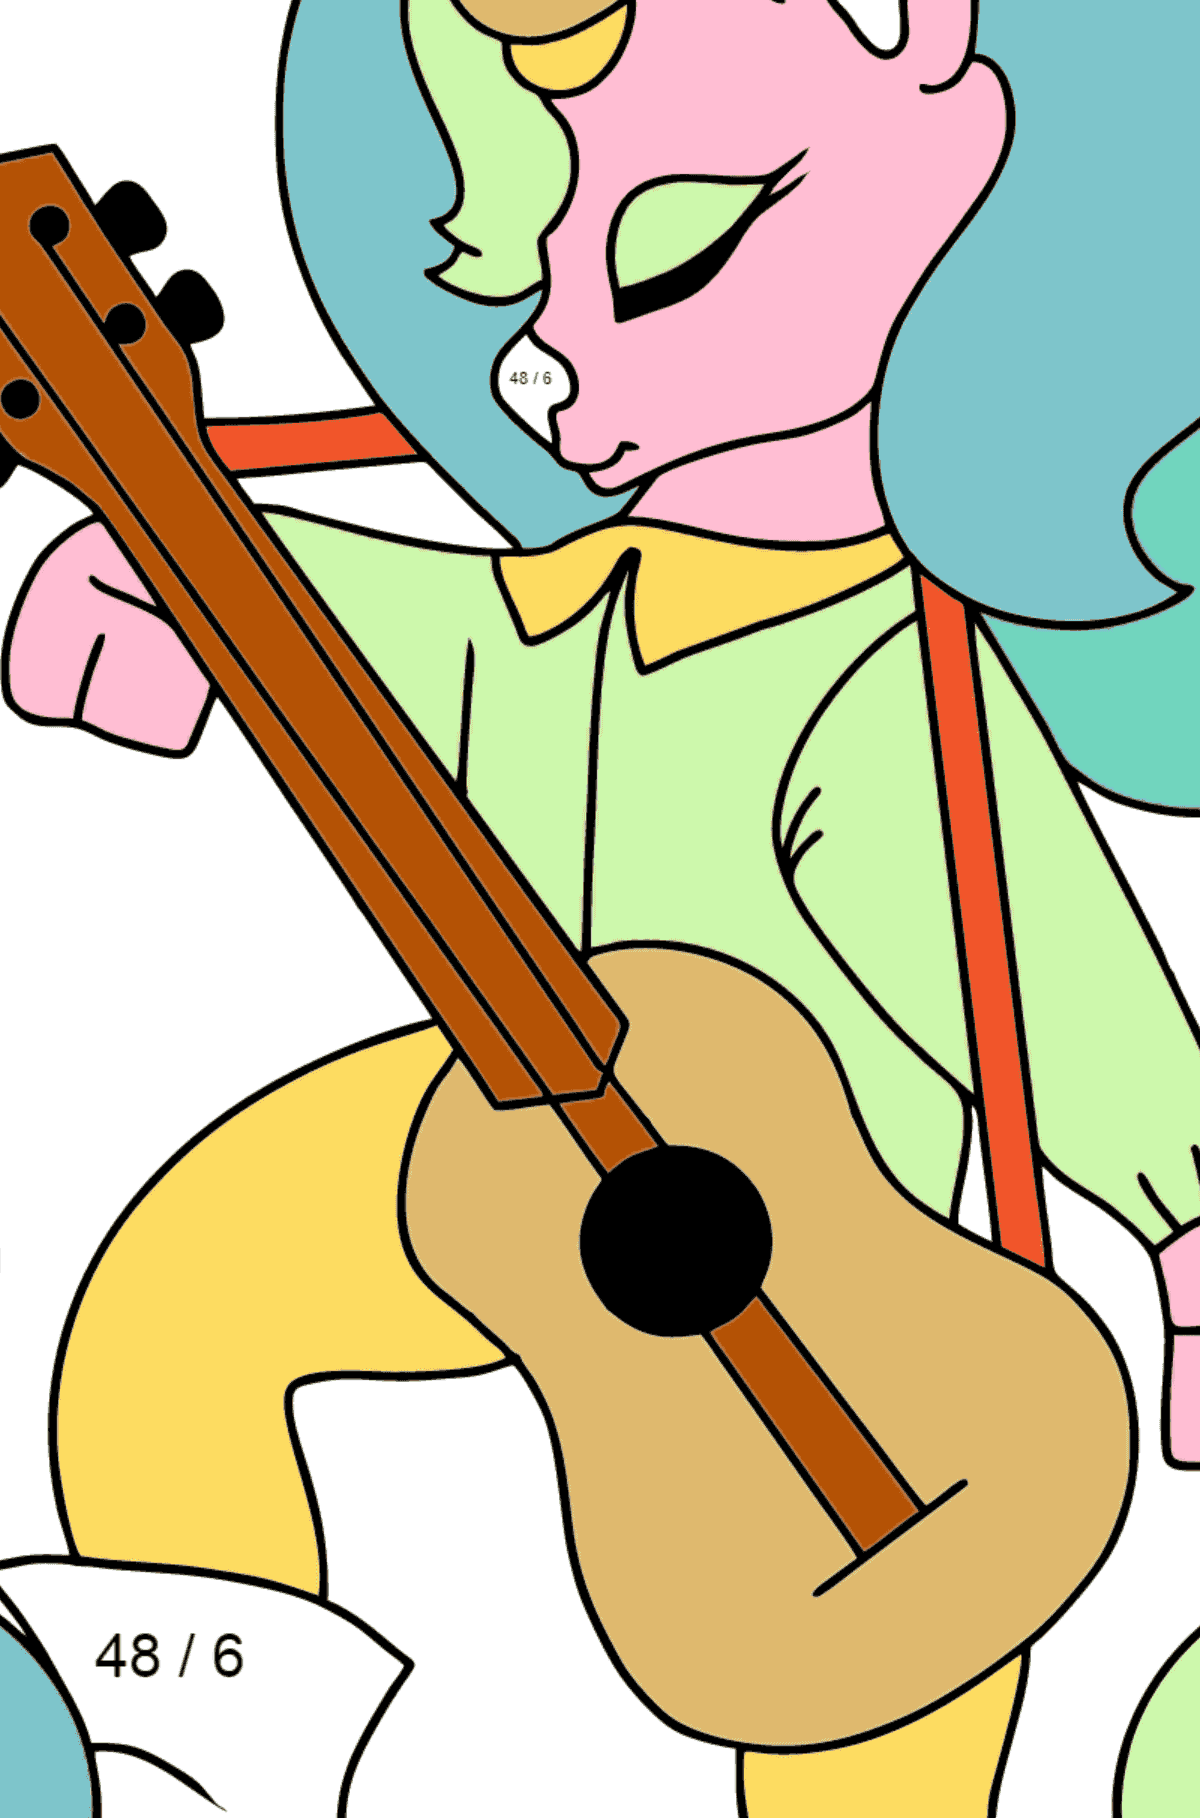 Coloring Page - A Unicorn with a Guitar - Math Coloring - Division for Kids